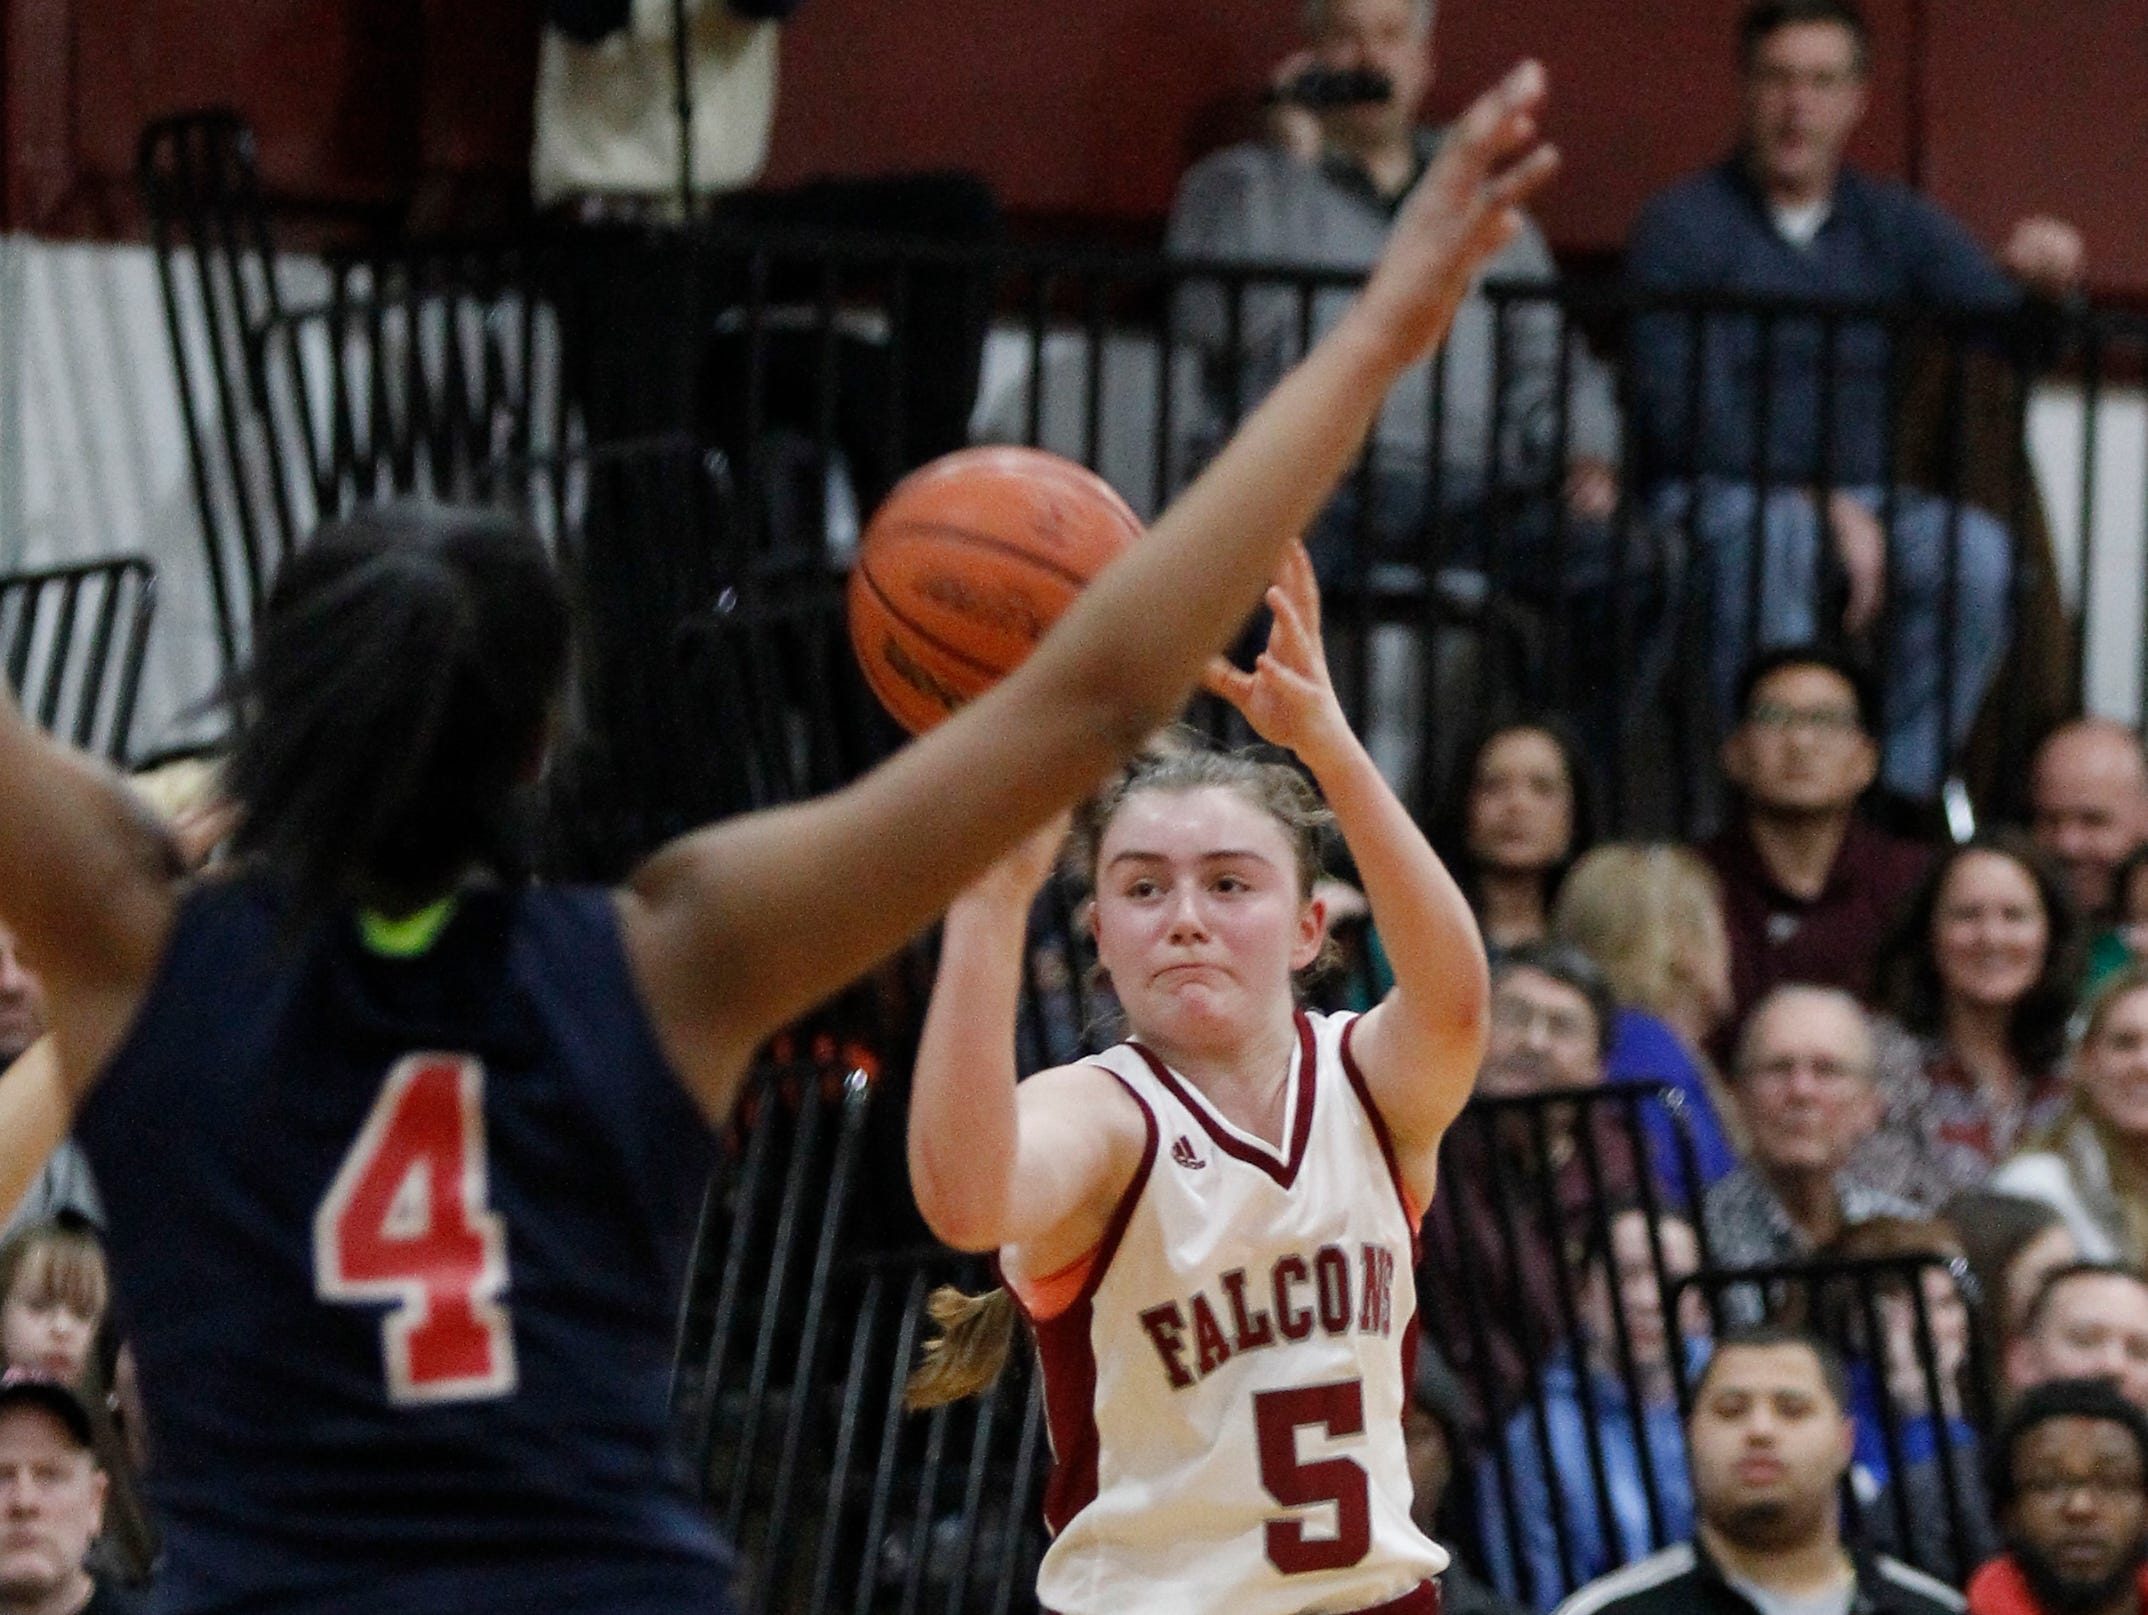 Albertus Magnus' Kate Mager takes an outside shot during the second half of the Falcons' victory over Peekskill in a Class A quarterfinal.